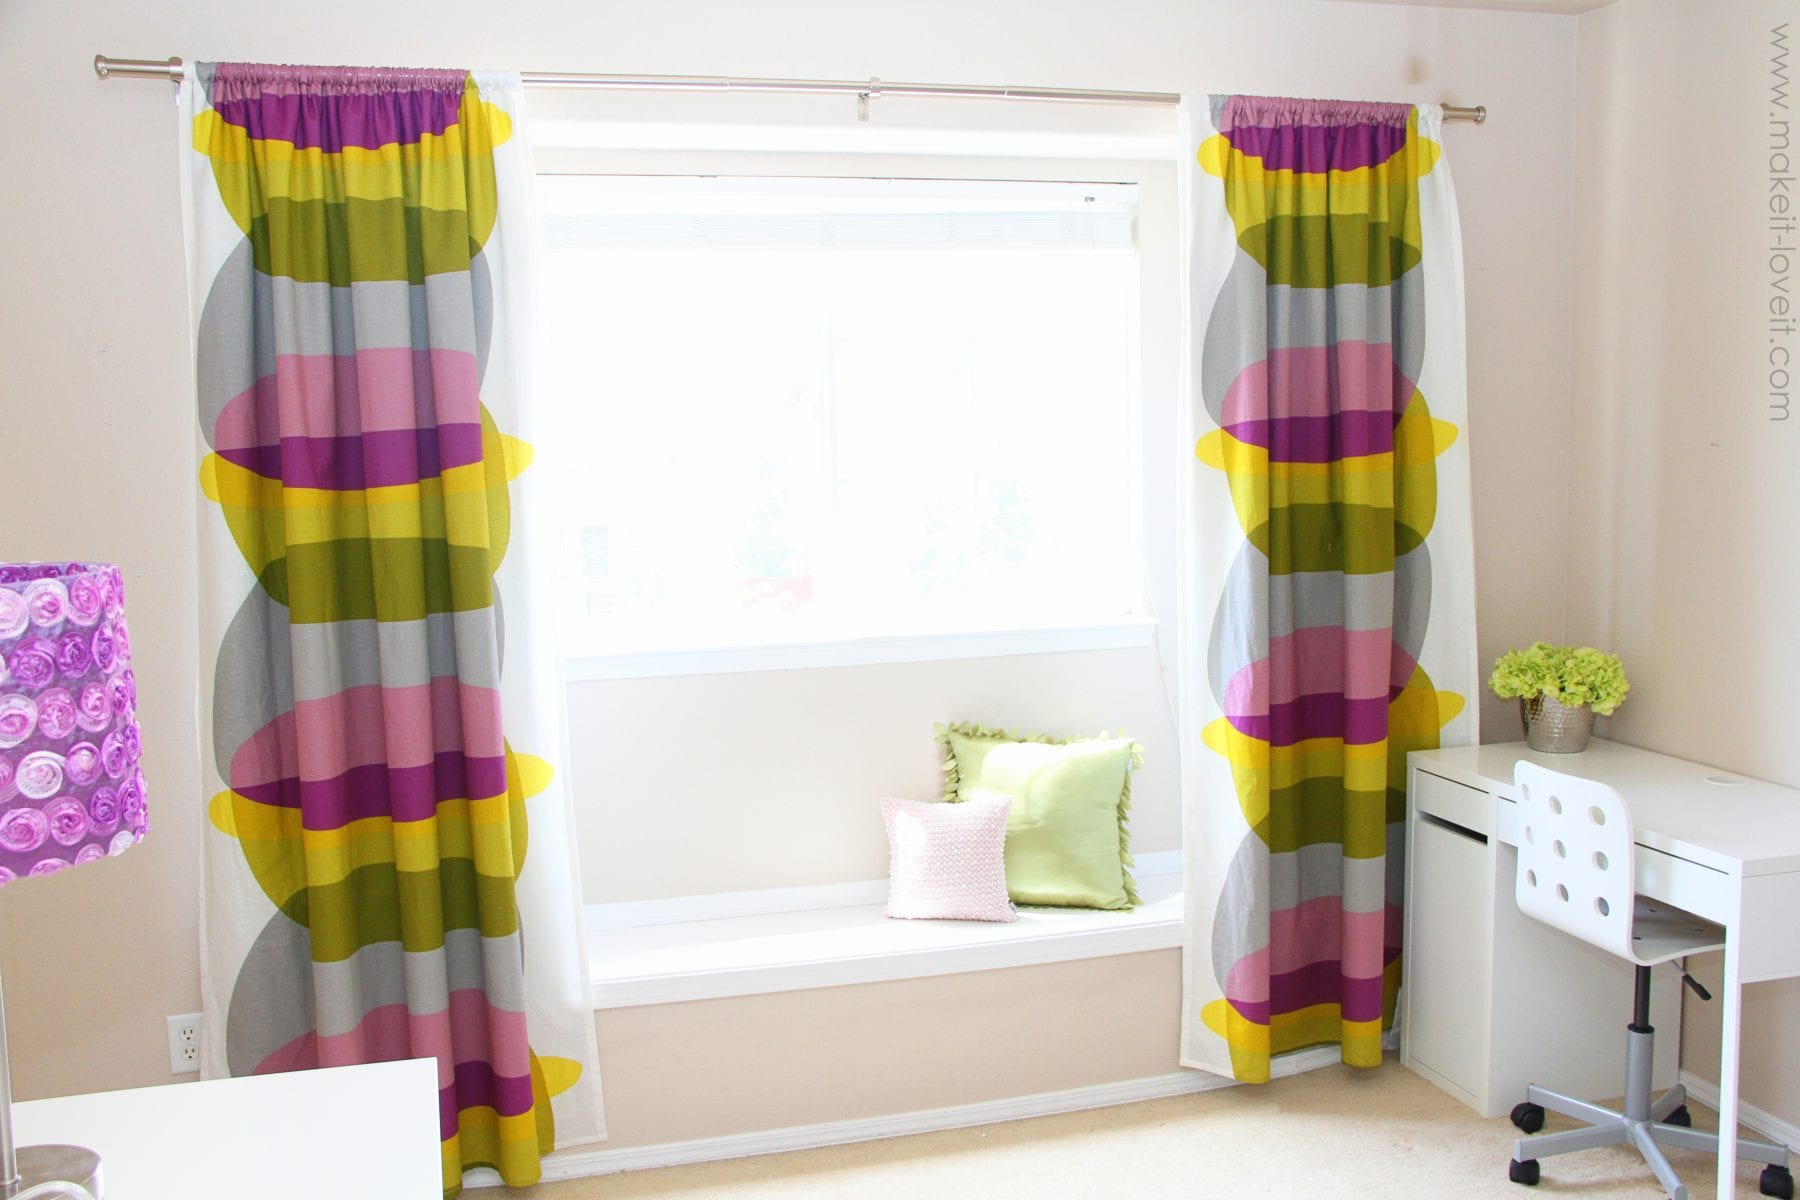 Blackout Curtain Diy How To Add Blackout Liner To Your Existing Curtains